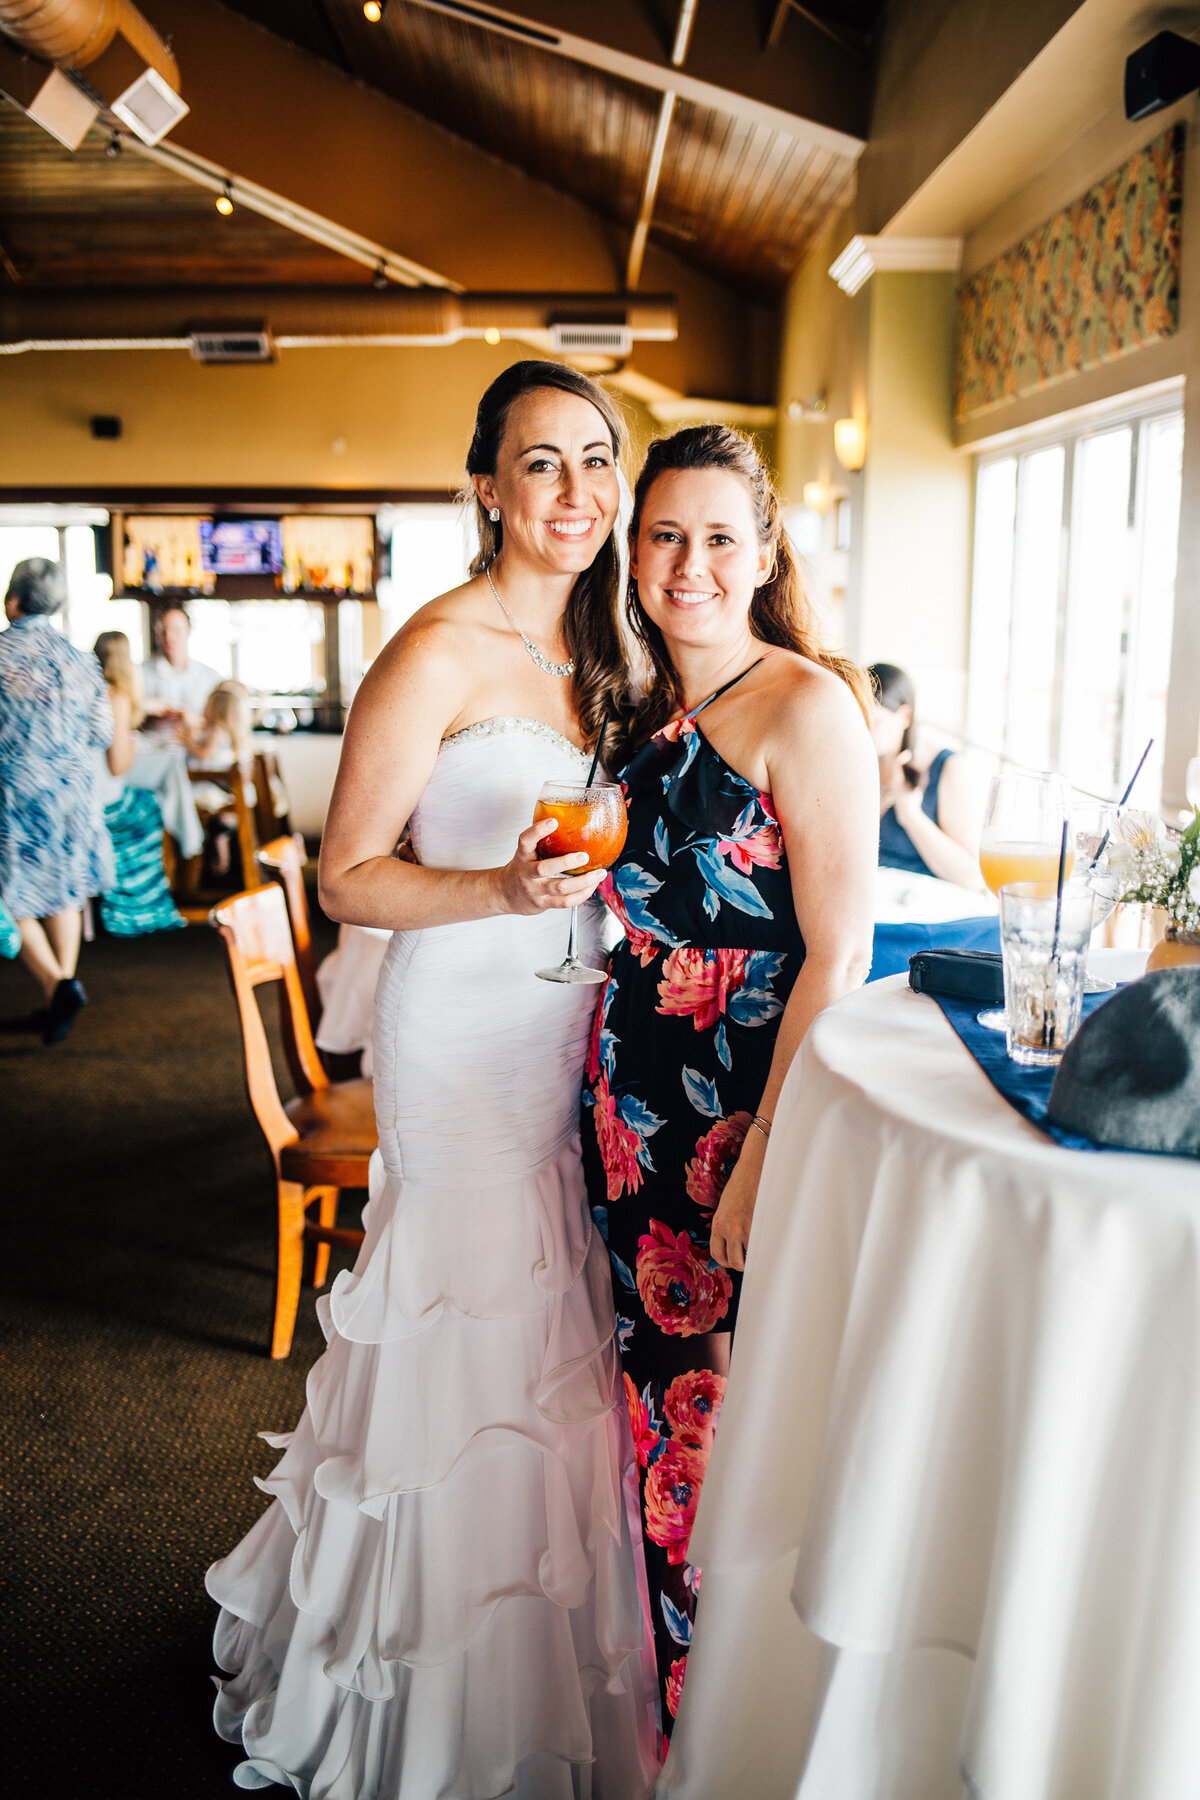 Kimberly_Hoyle_Photography_Marrero_Millikens_Reef_Wedding-79